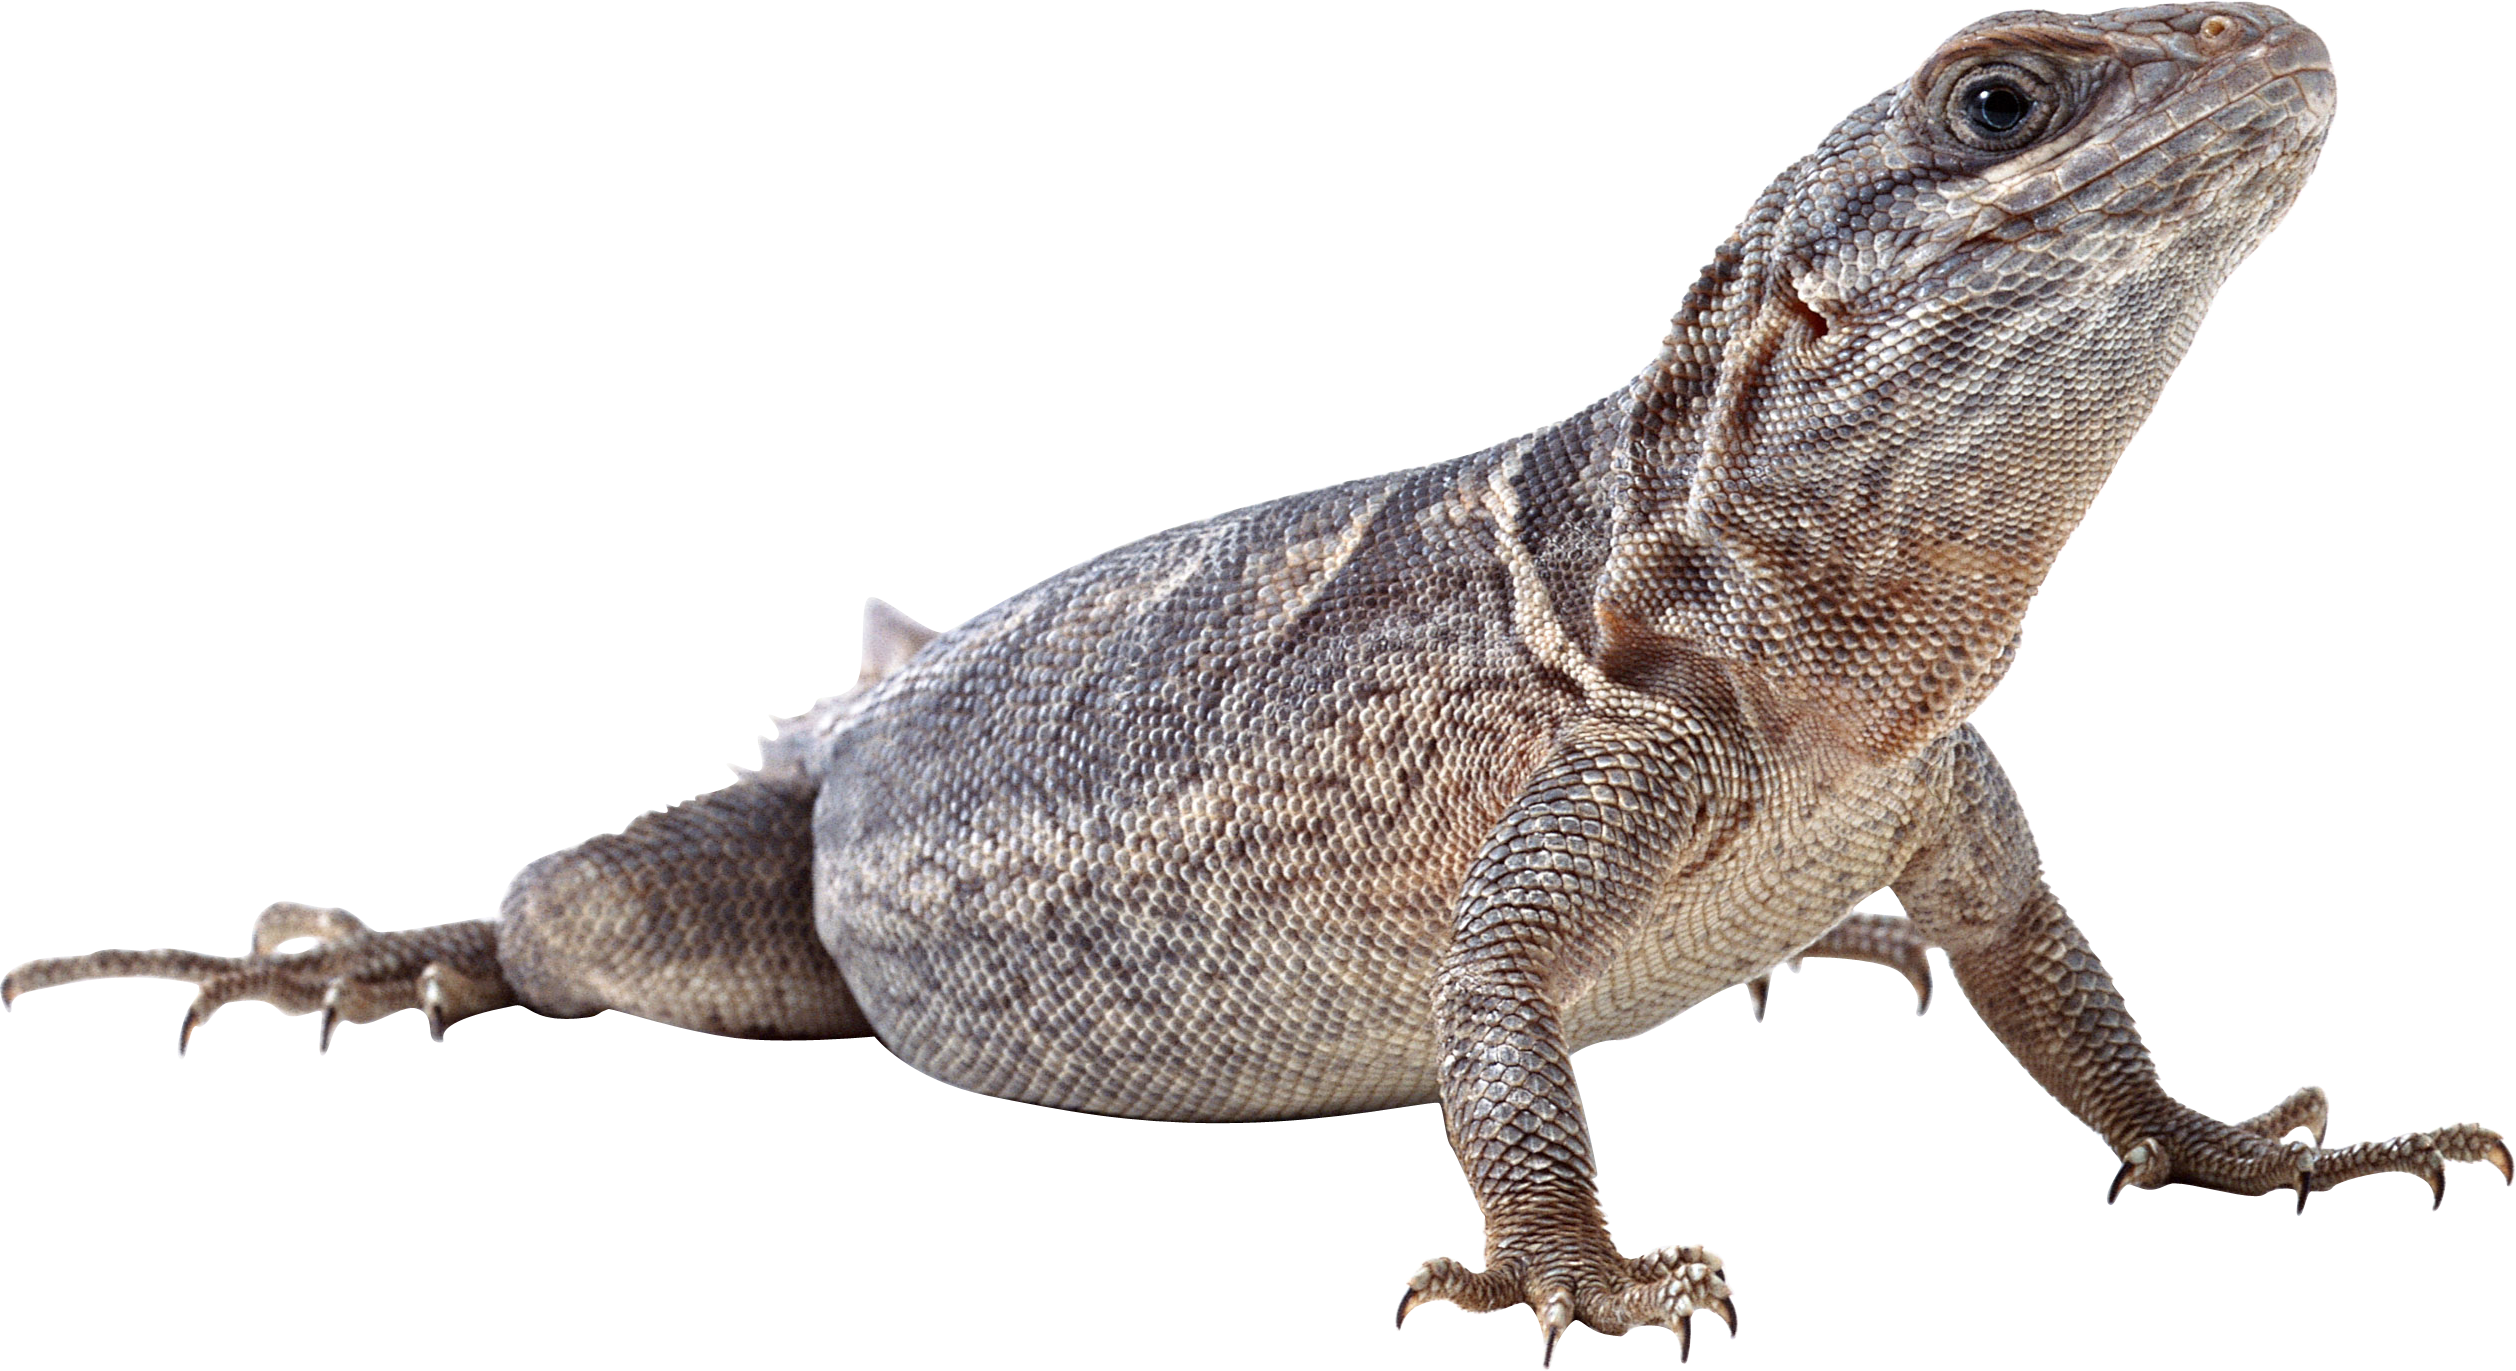 Png images free download. Lizard clipart chipkali